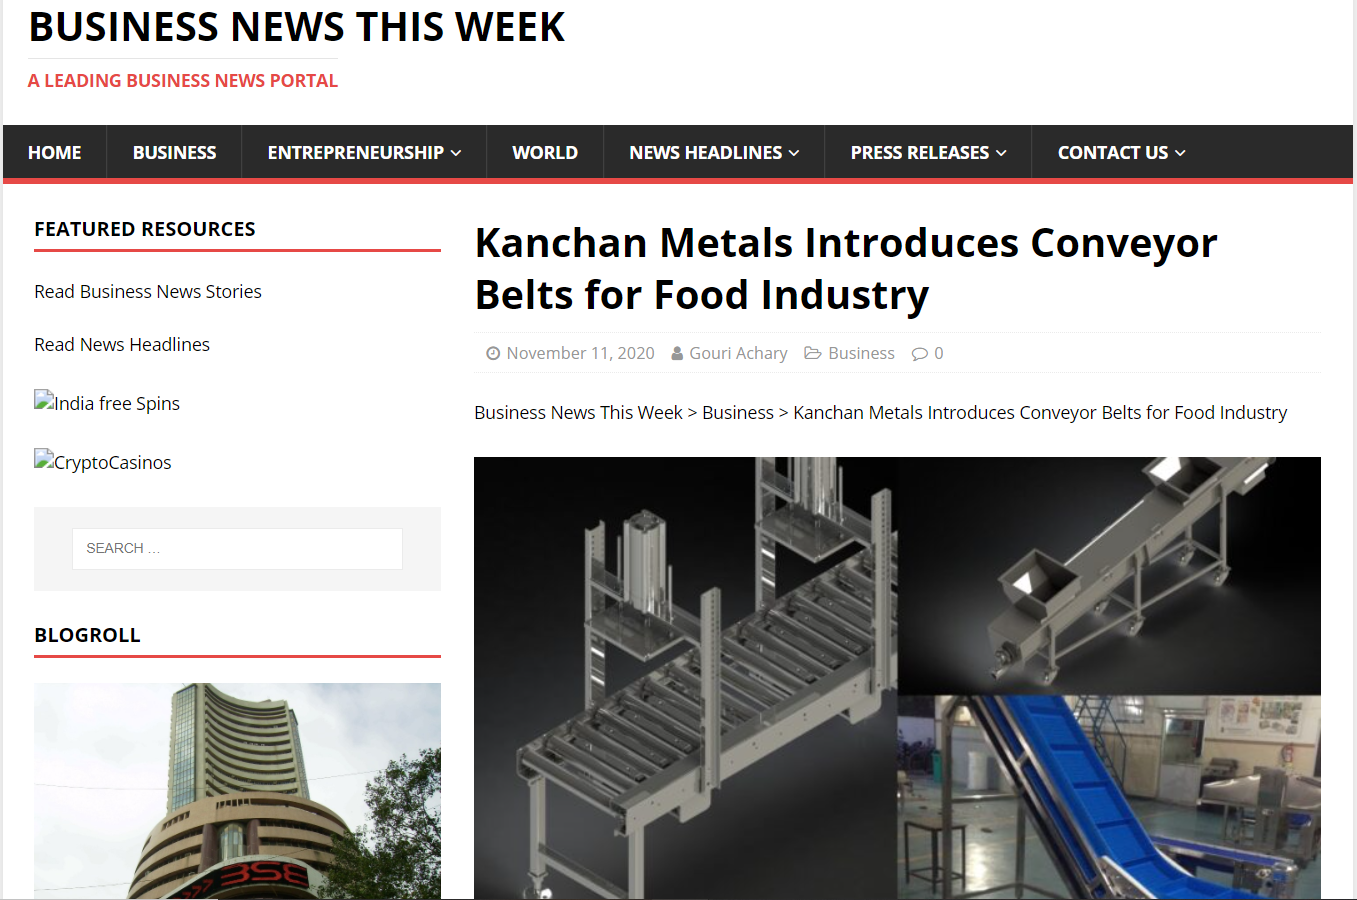 Strategic Decision to launch new conveyor belts